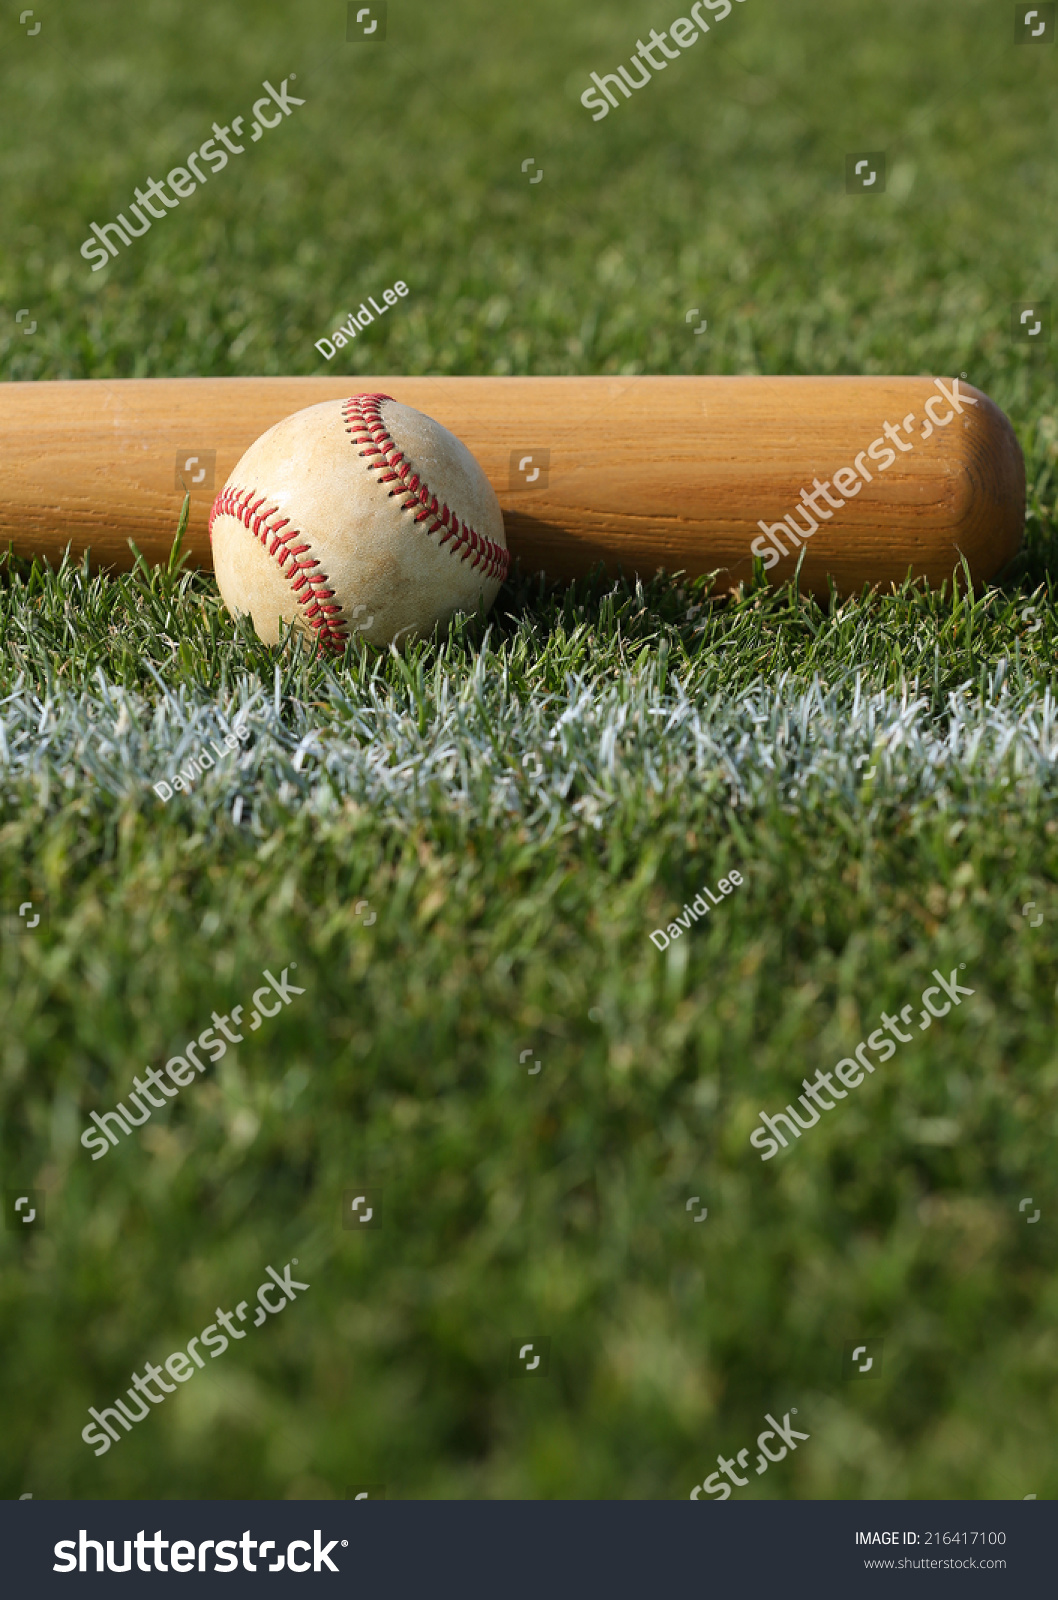 Baseball Bat On The Grass With Room For Copy